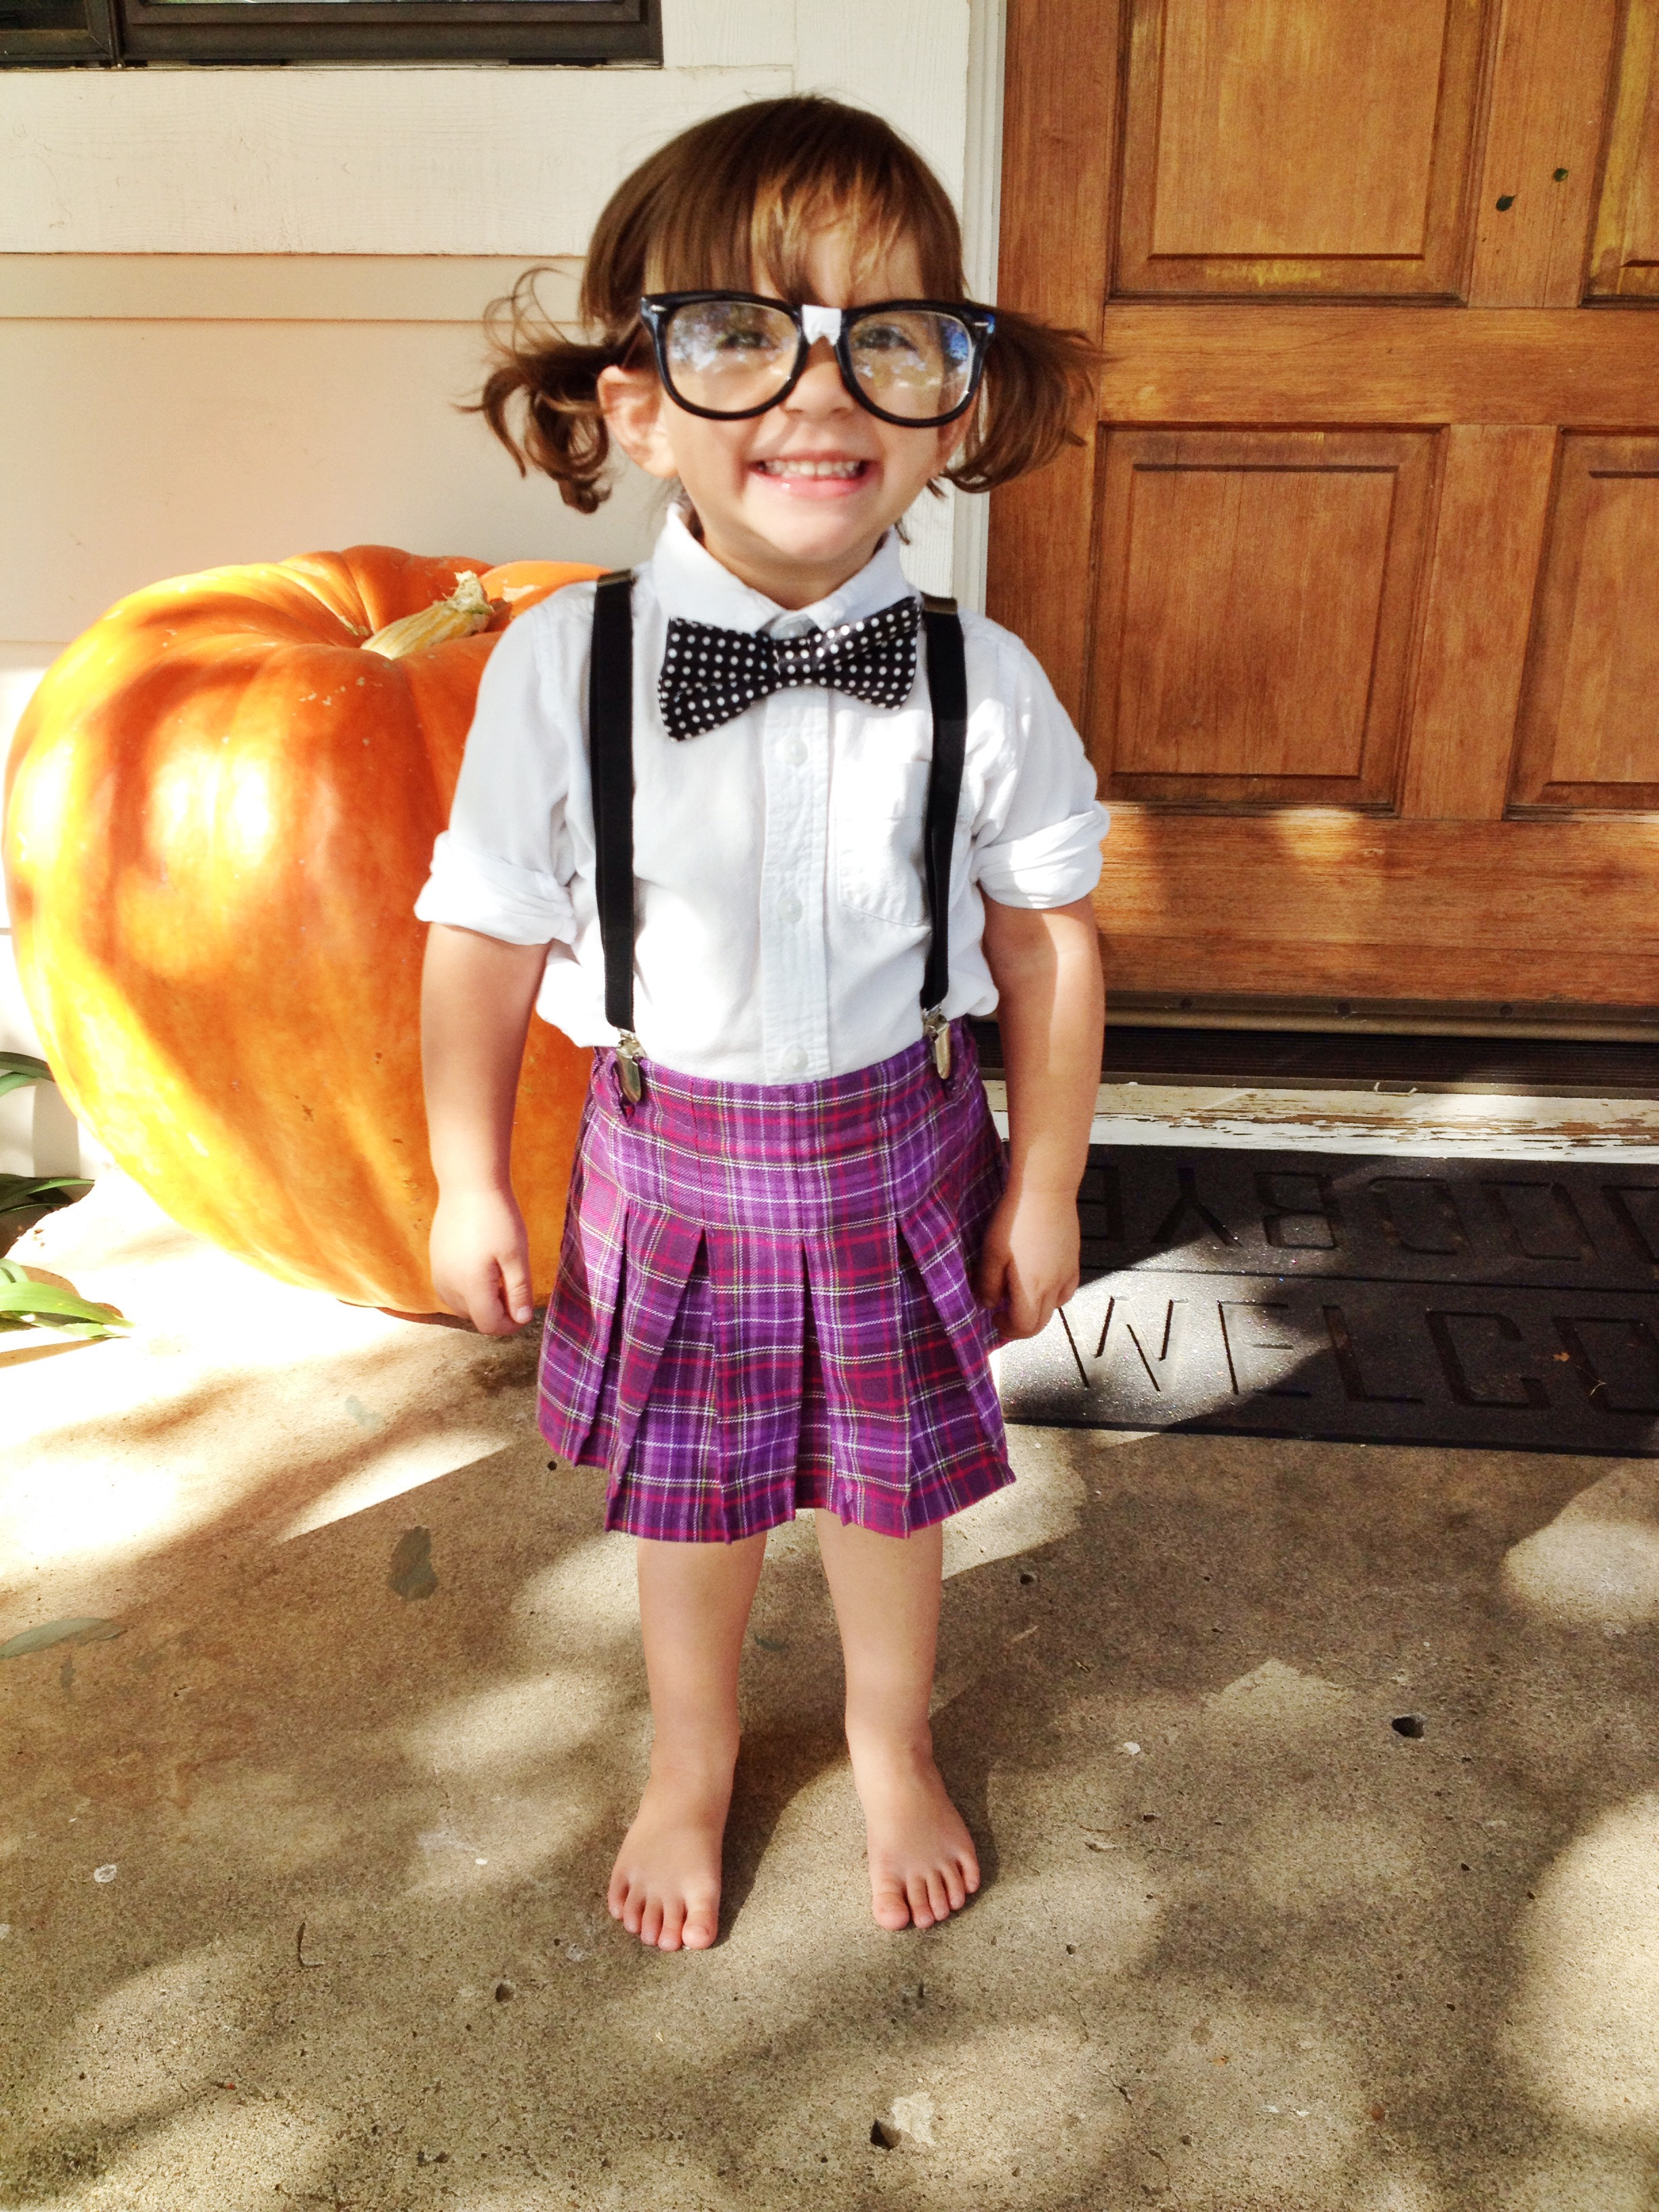 Easy inexpensive amp adorable diy halloween costumes for littles nerd